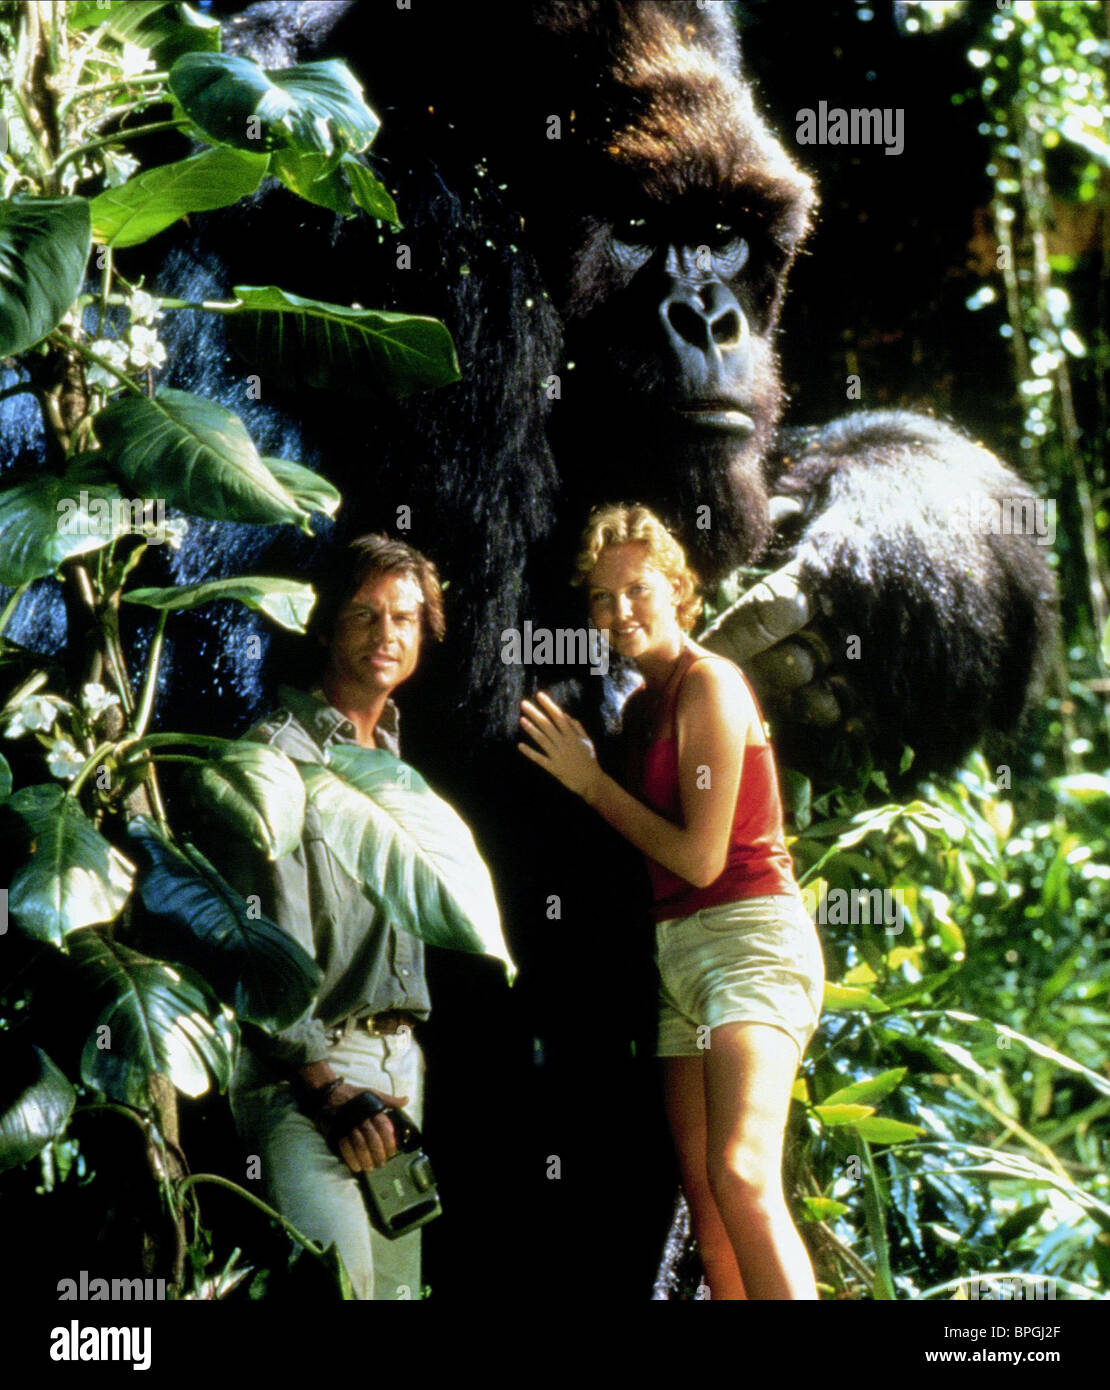 bill paxton charlize theron amp gorilla mighty joe young